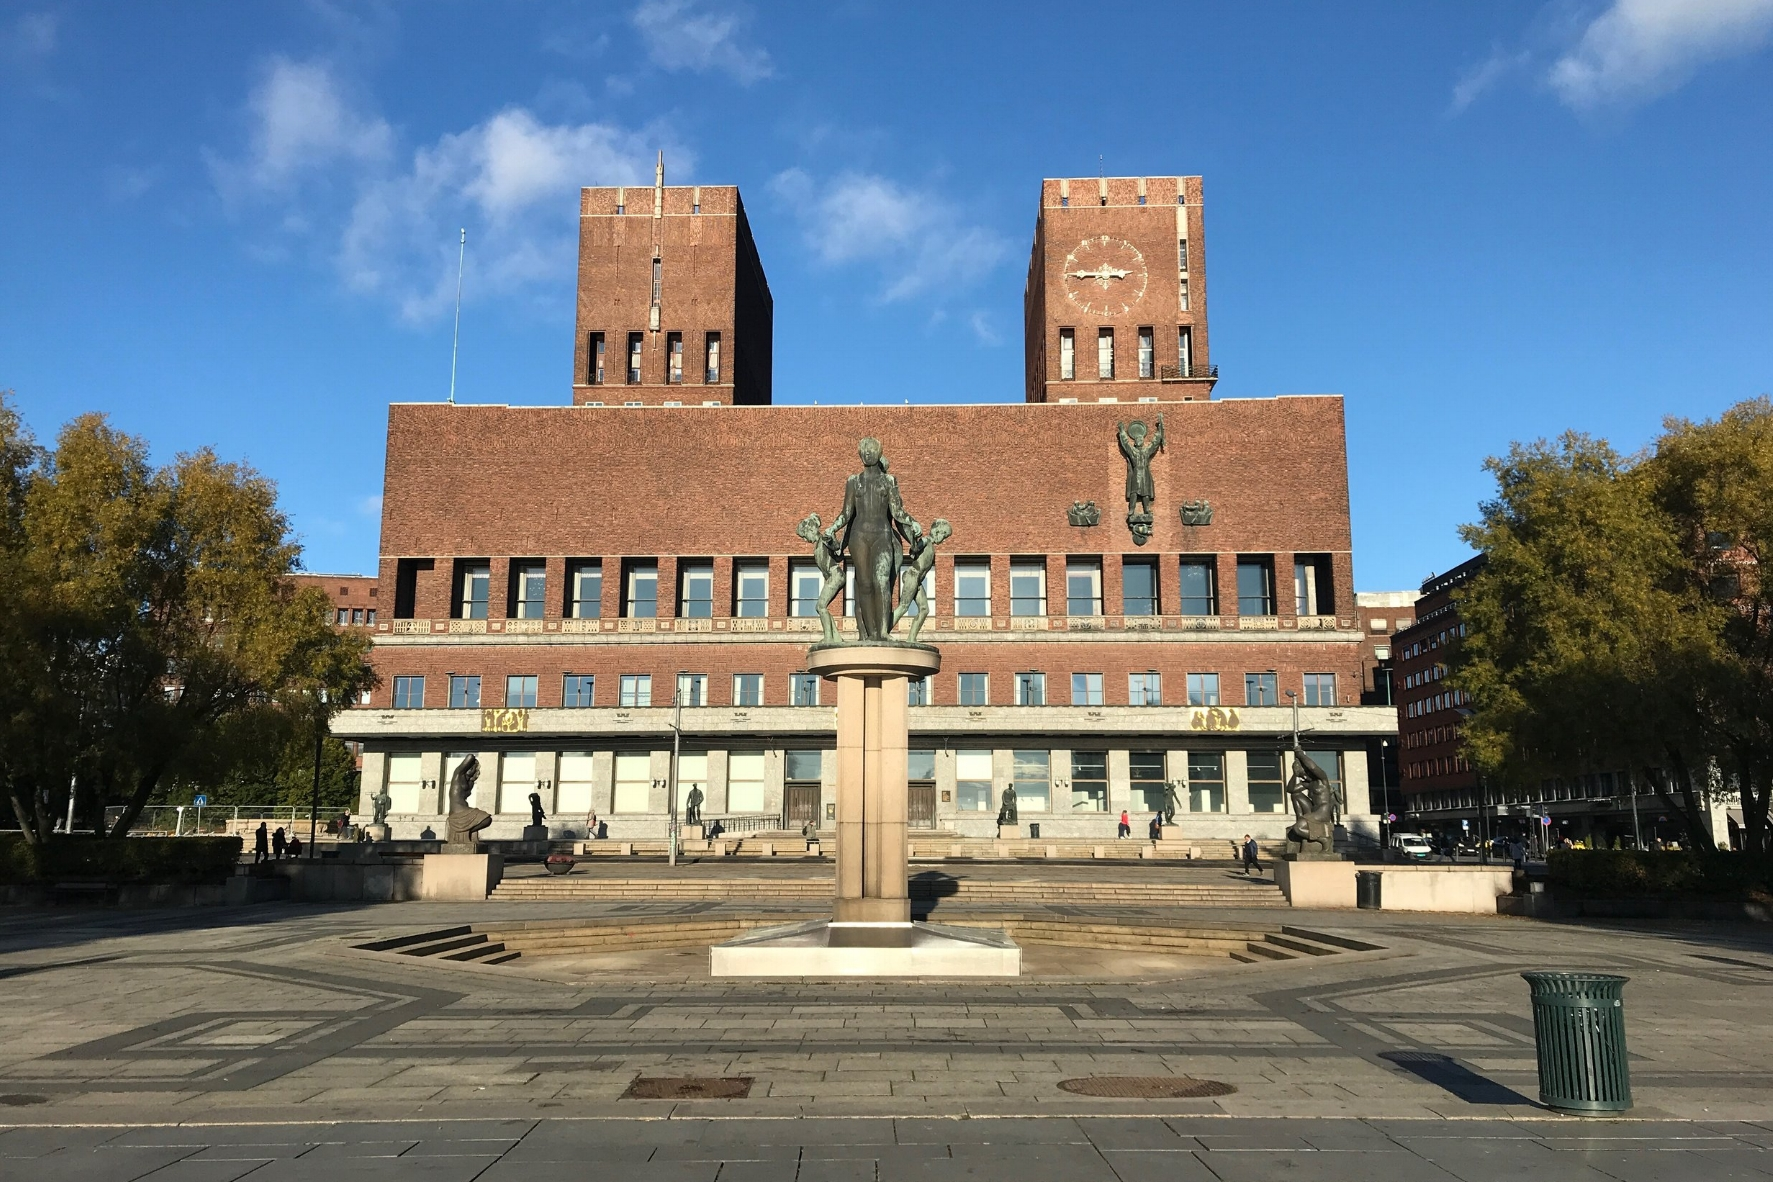 Oslo Rådhus (City Hall) is also the site of the annual Nobel Peace Prize ceremony